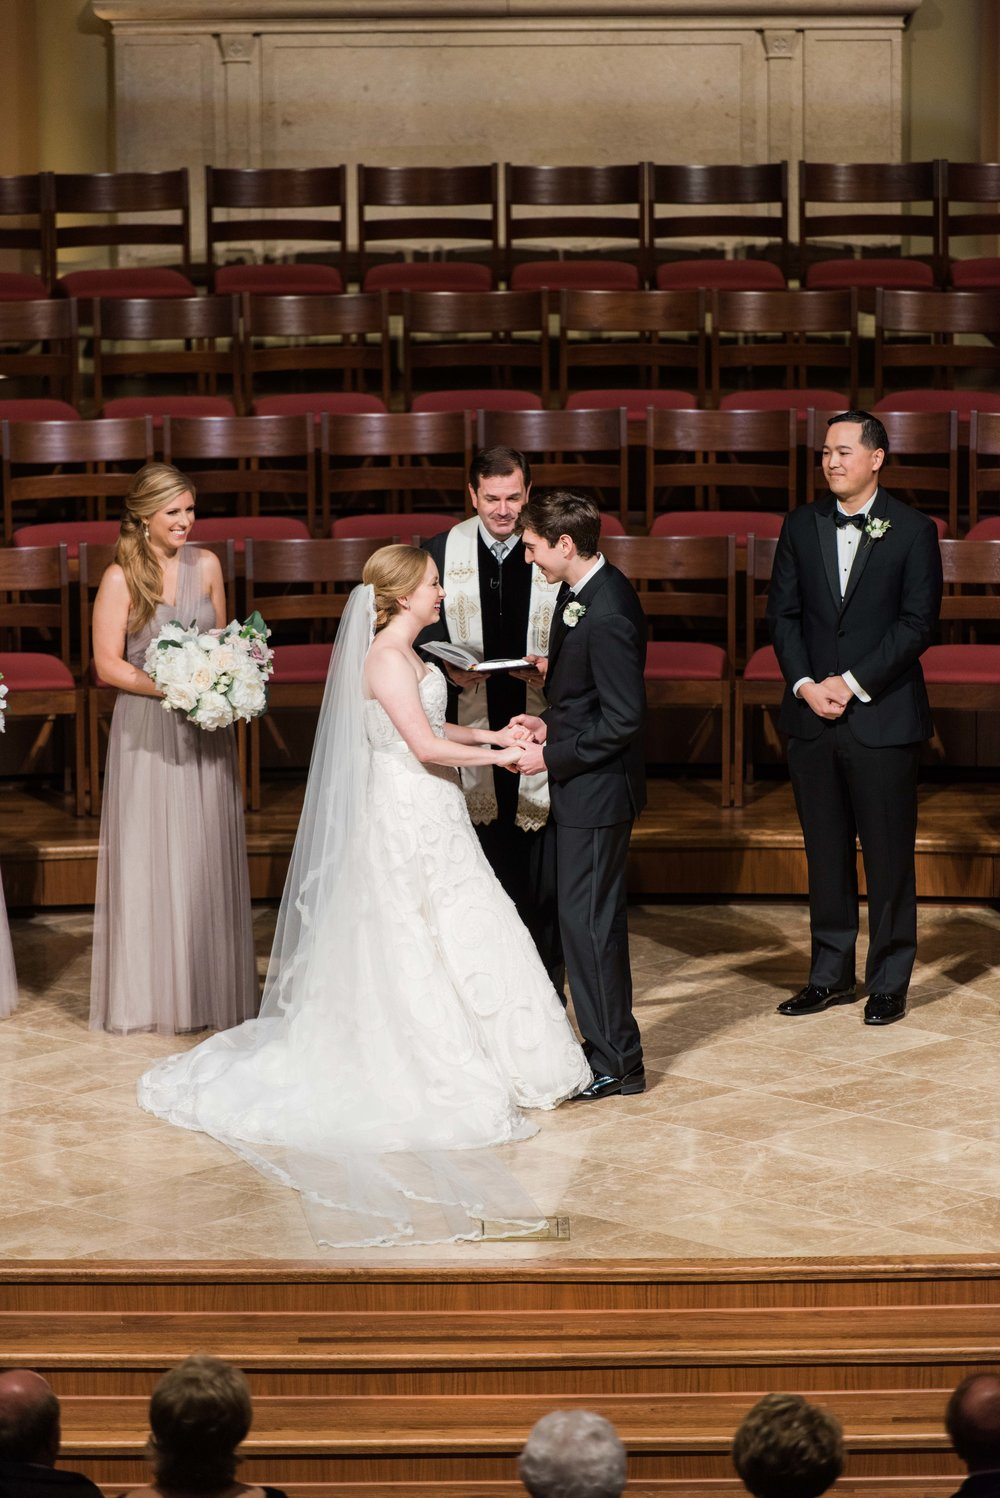 Fine-Art-Film-Houston-Wedding-Photographer-Best-Top-Luxury-Texas-Austin-Dallas-Destination-Dana-Fernandez-Photography-River-Oaks-Country-Club-South-Main-Baptist-Ceremony-Reception-Wedding-35.jpg